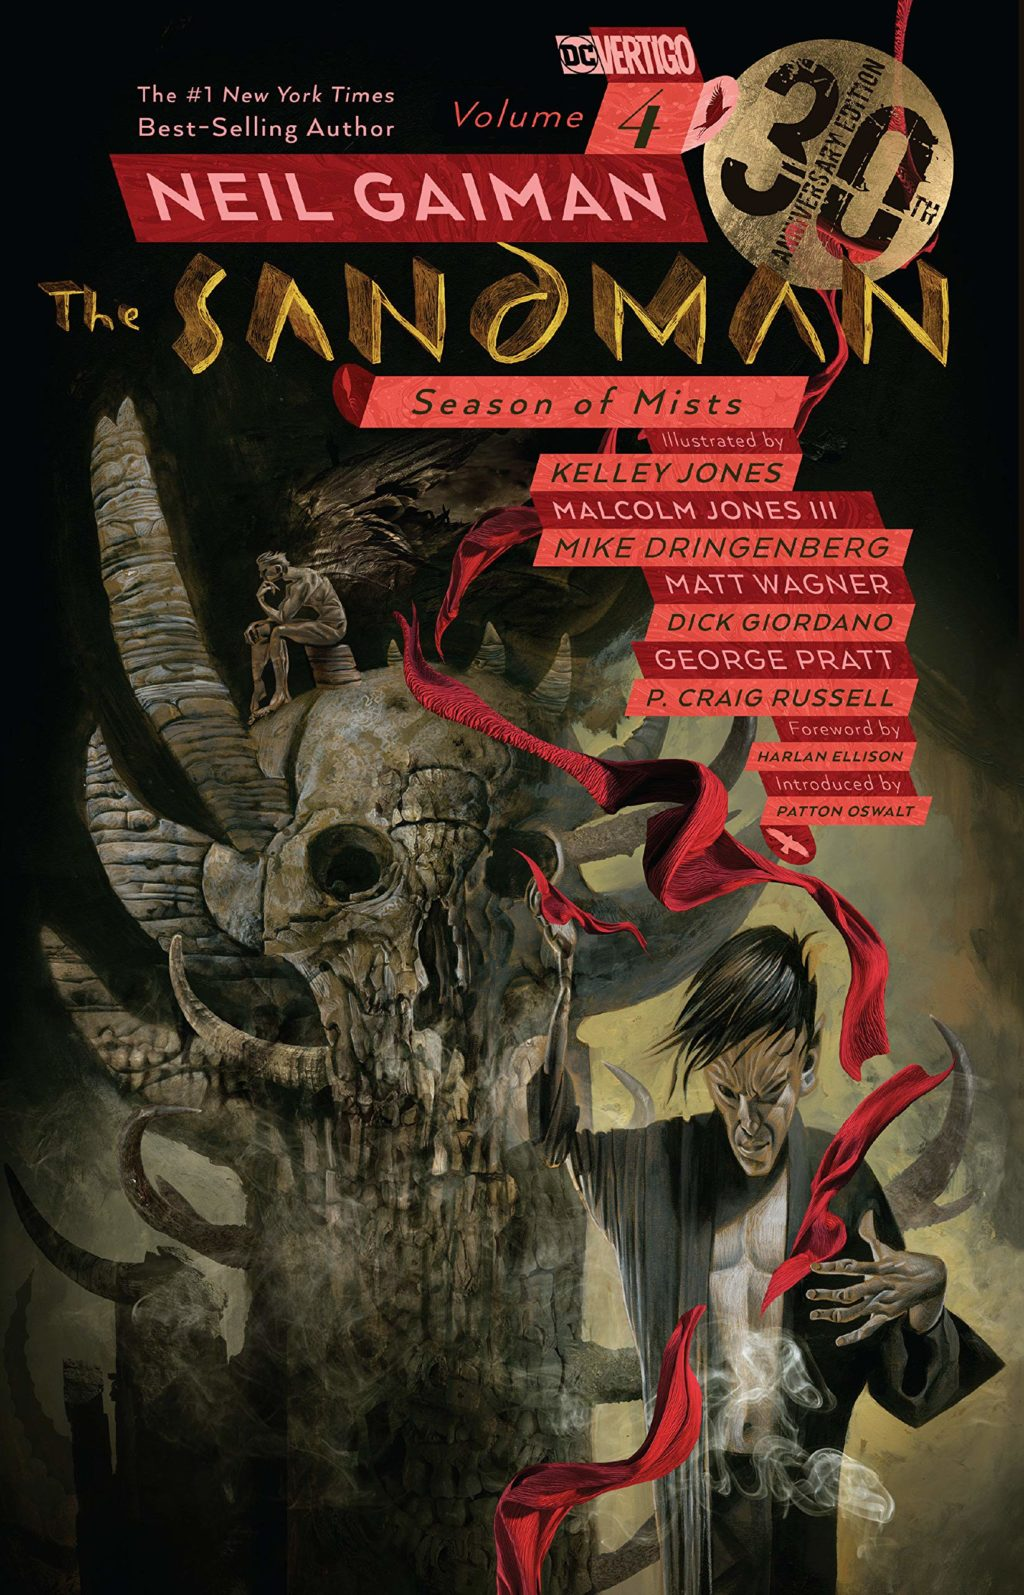 The Sandman Season of Mists cover 30th anniversary